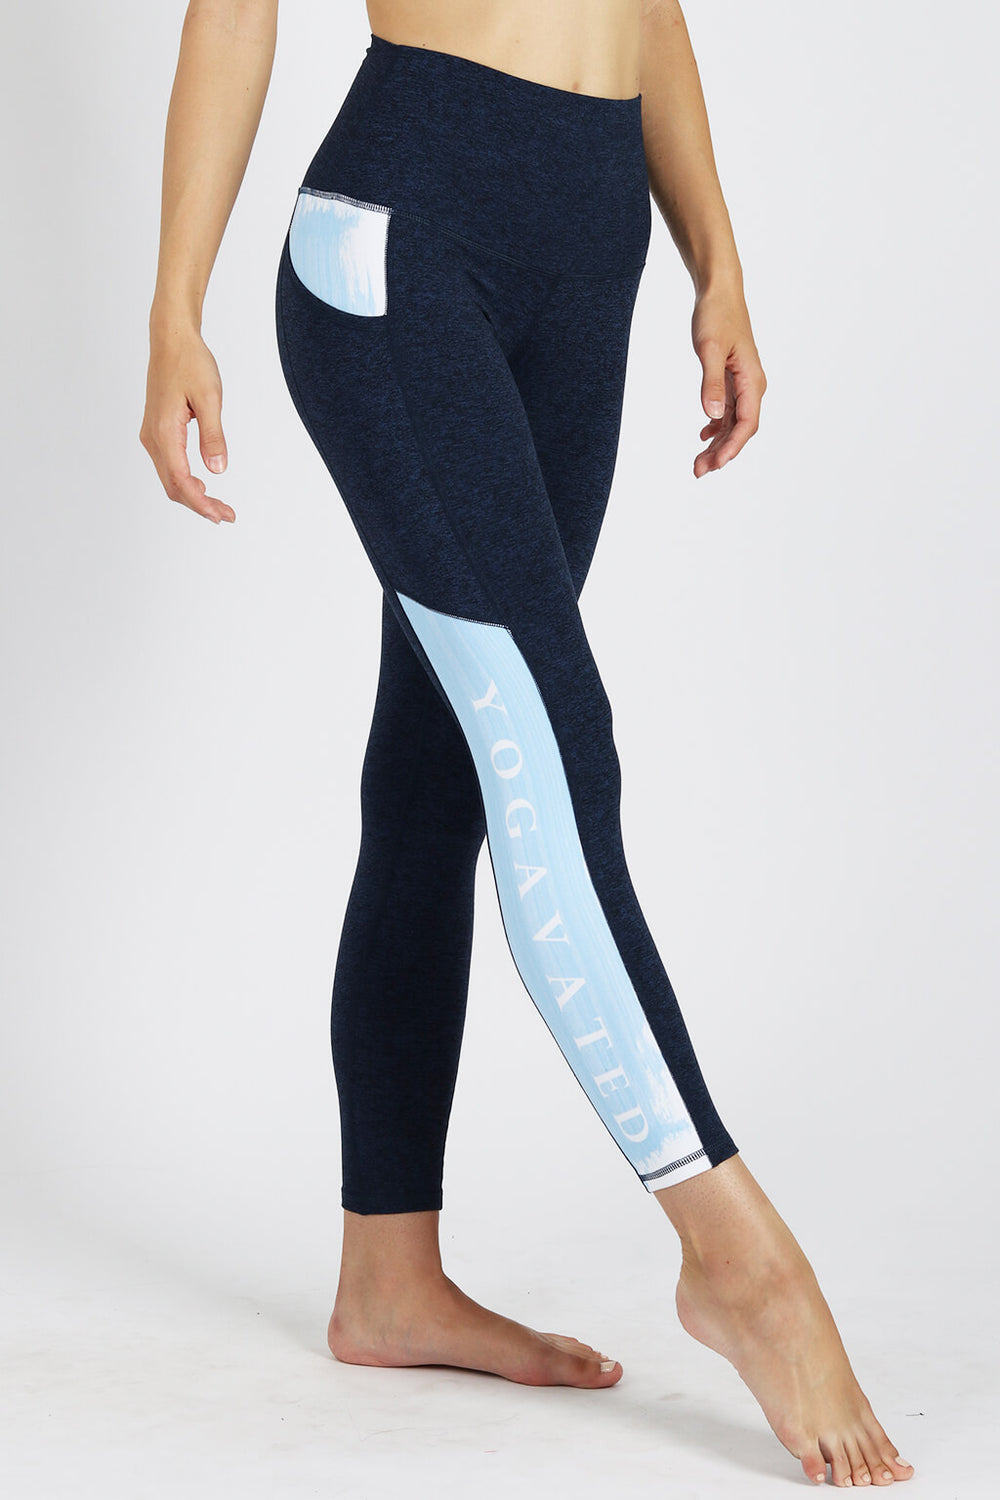 yoga Leggings by Yogavated Athletic Apparel Yogavated Stroke Legging